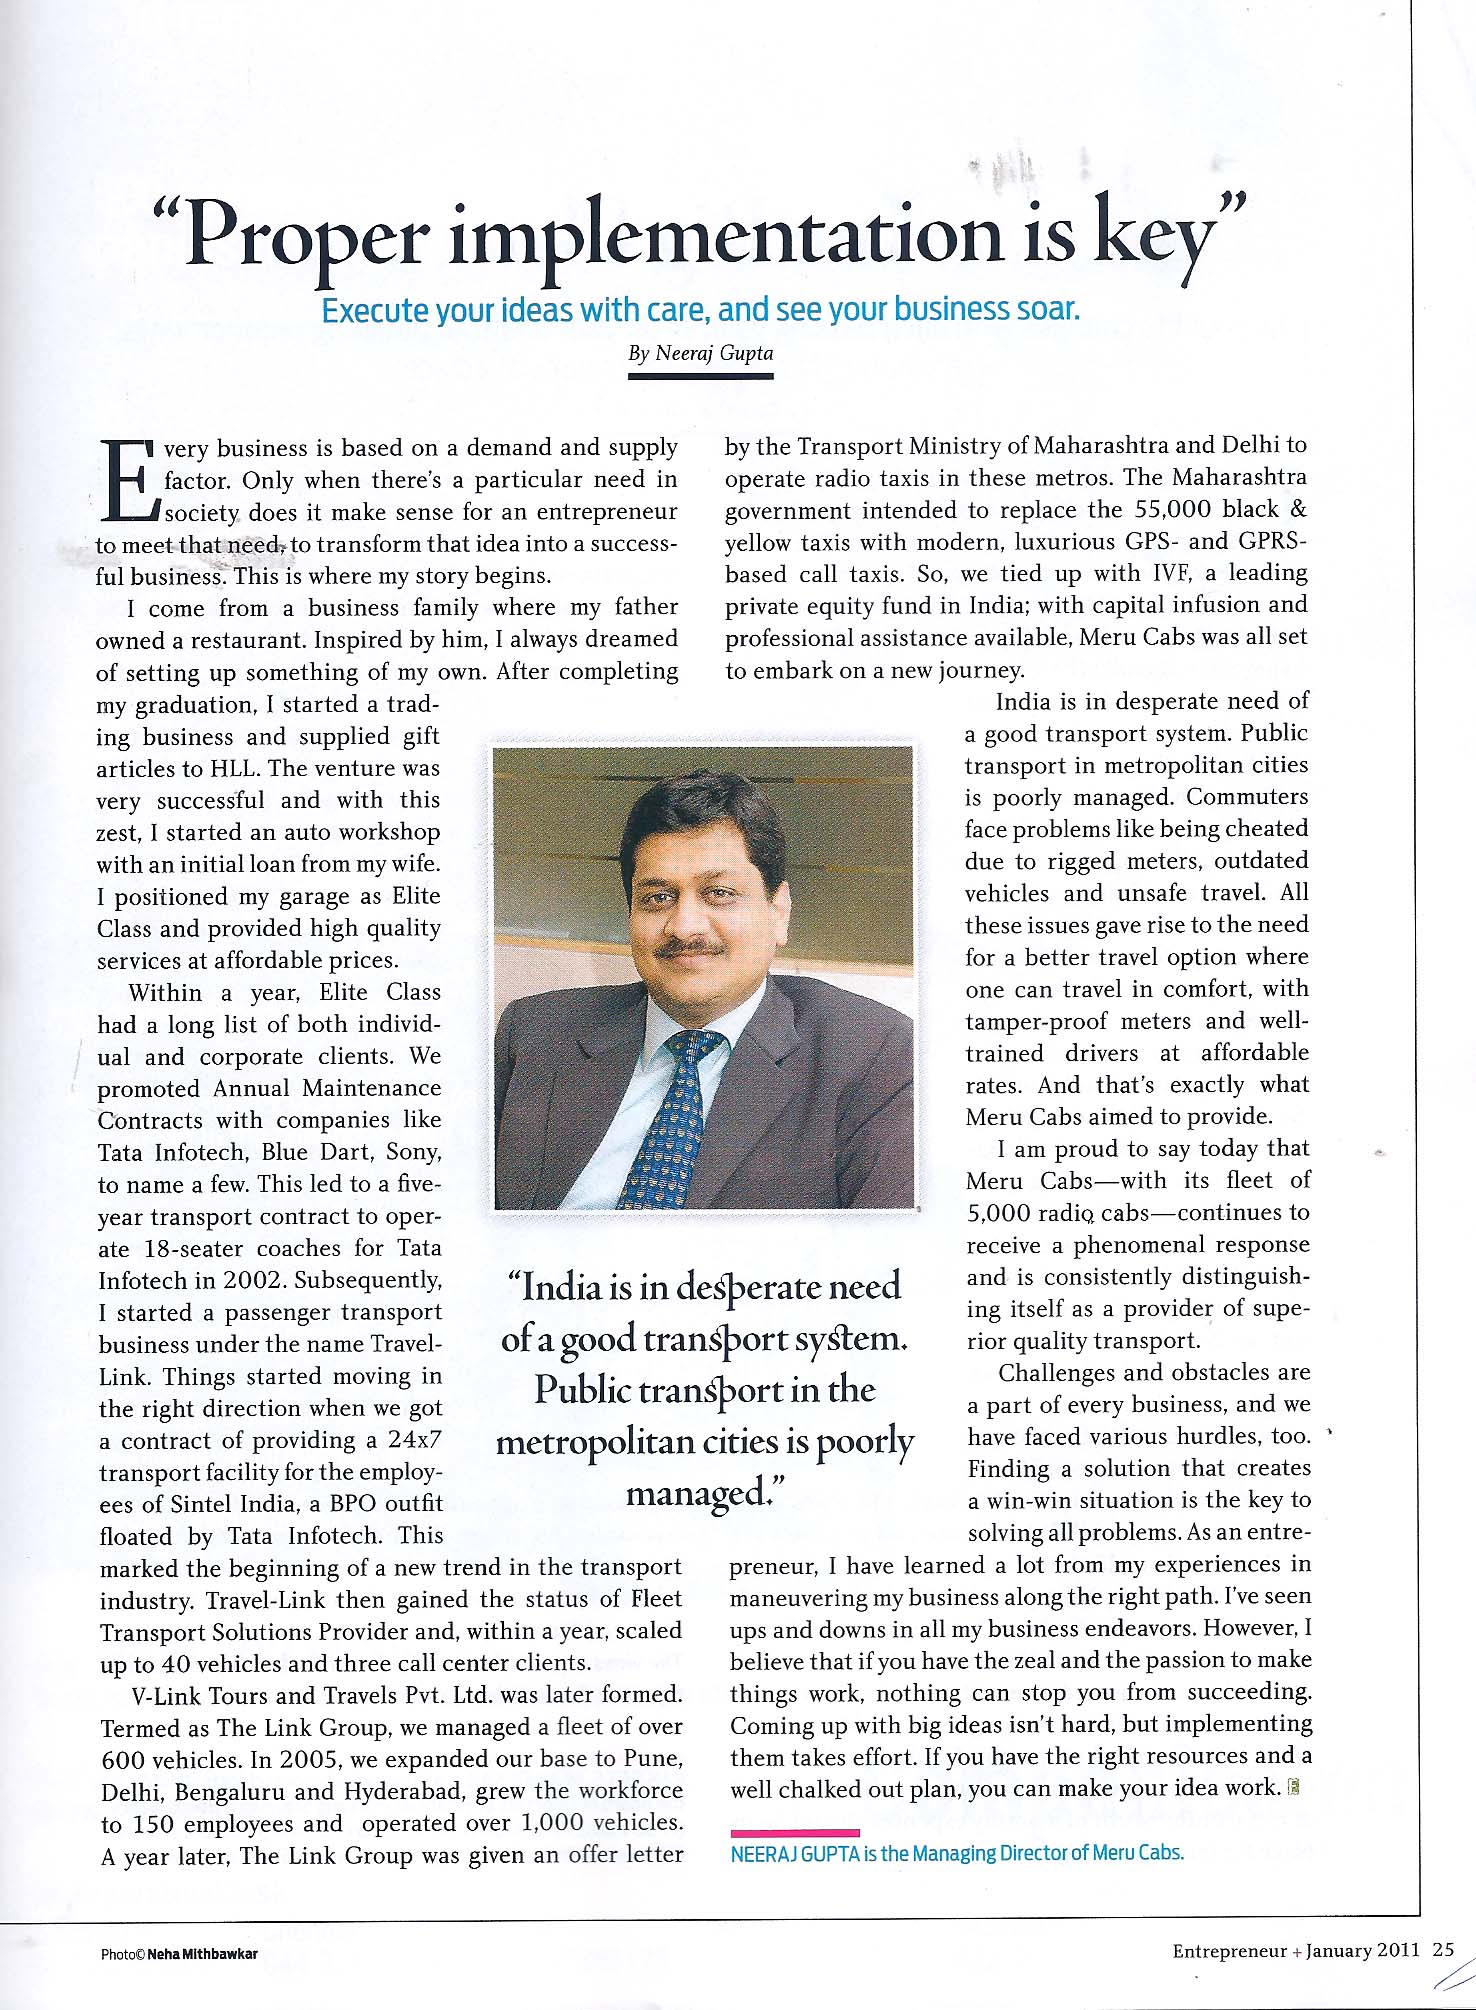 Entrepreneur January 2011 Pg 25.jpg